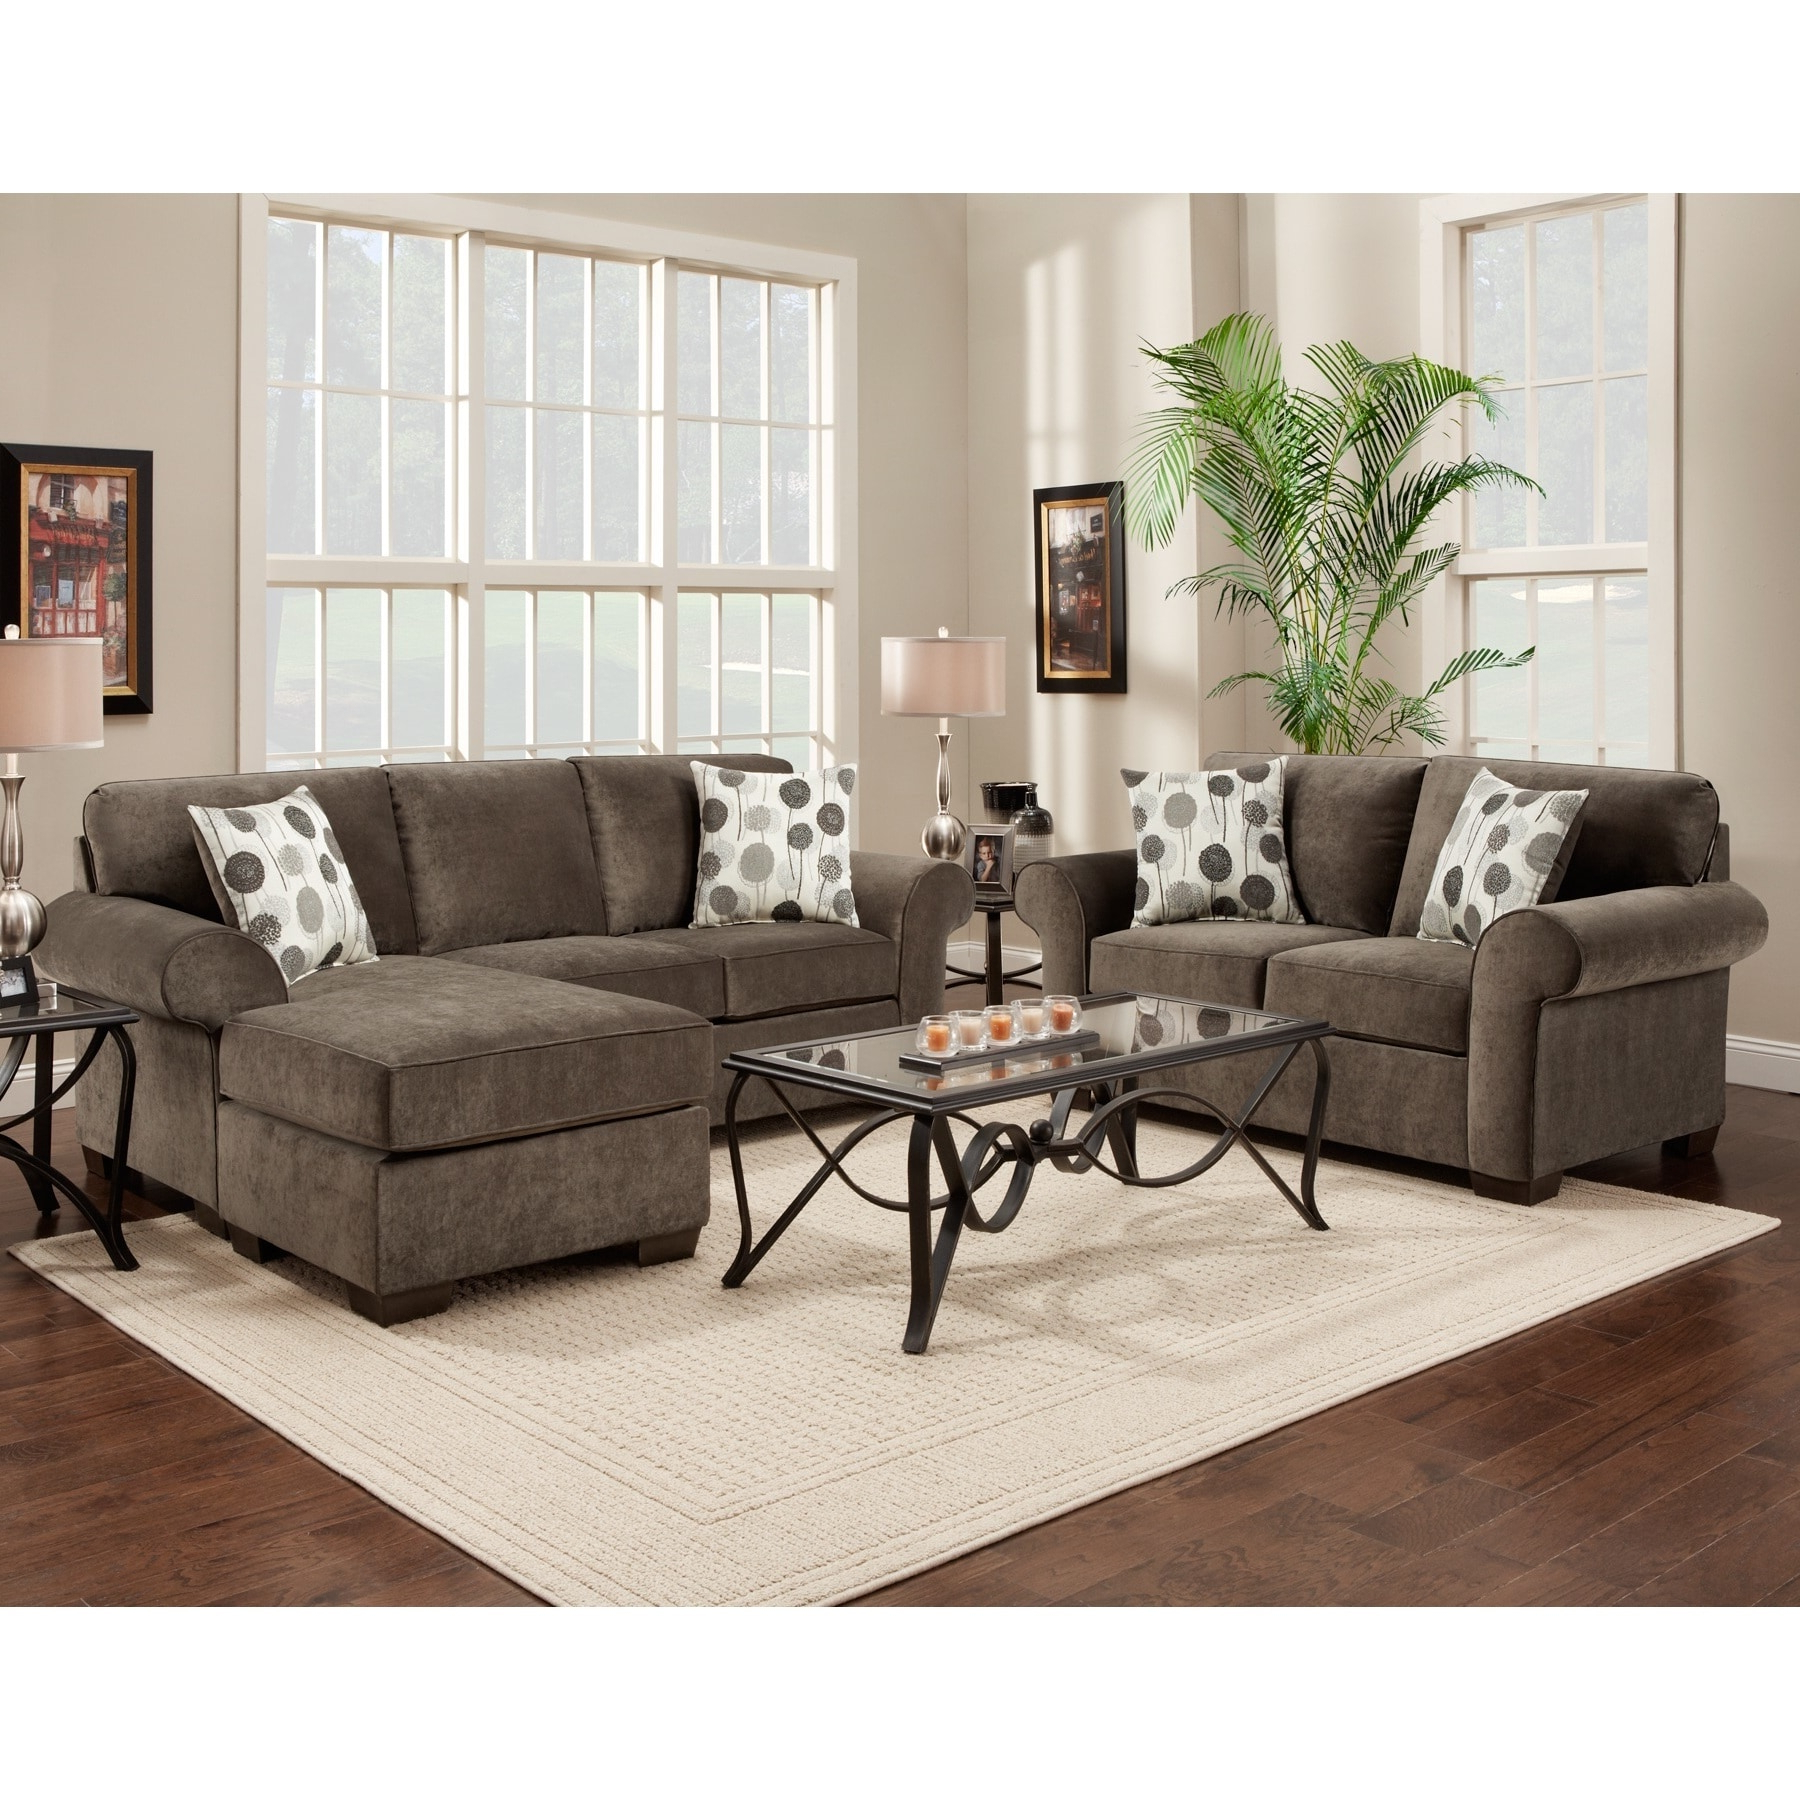 Widely Used Sectional Loveseat – Tidex With Turdur 2 Piece Sectionals With Raf Loveseat (View 20 of 20)